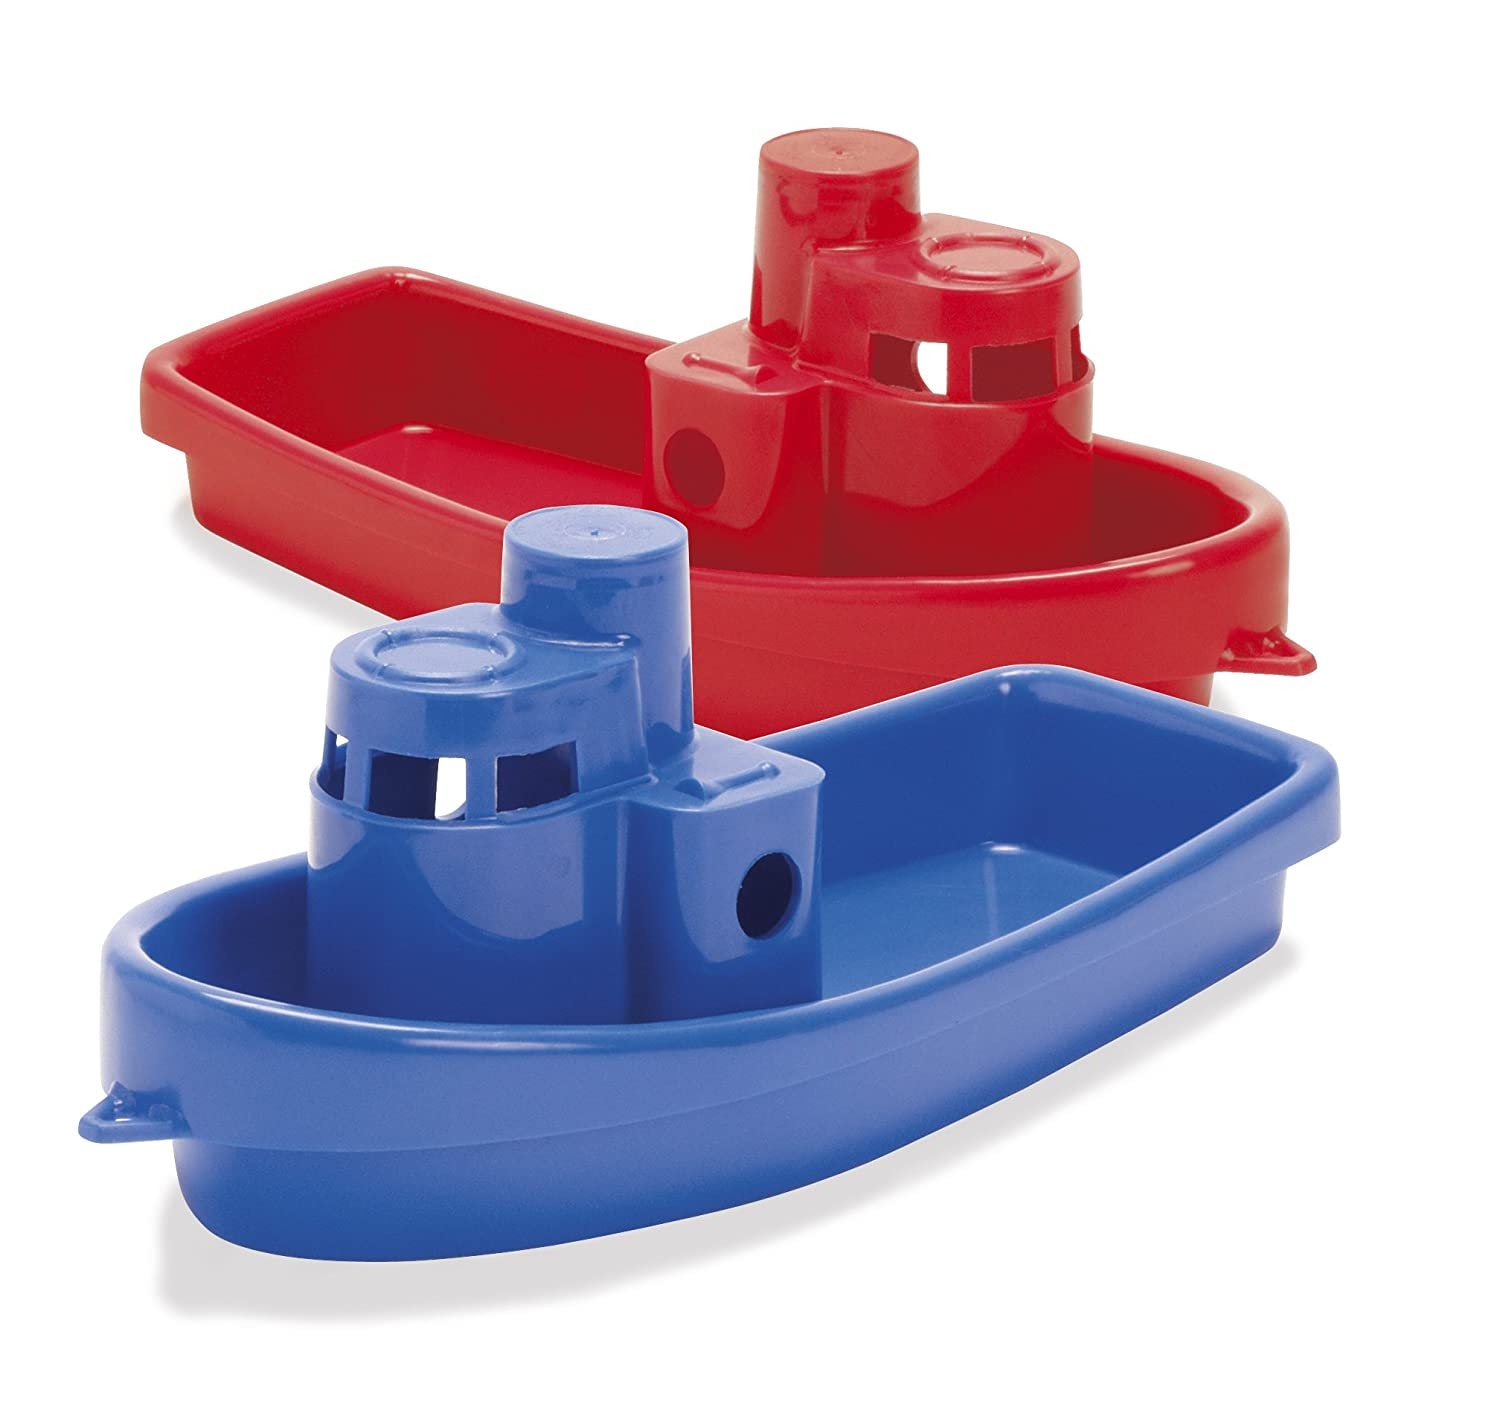 Fine Toy Boats For Kids Crest - Luxurious Bathtub Ideas and ...